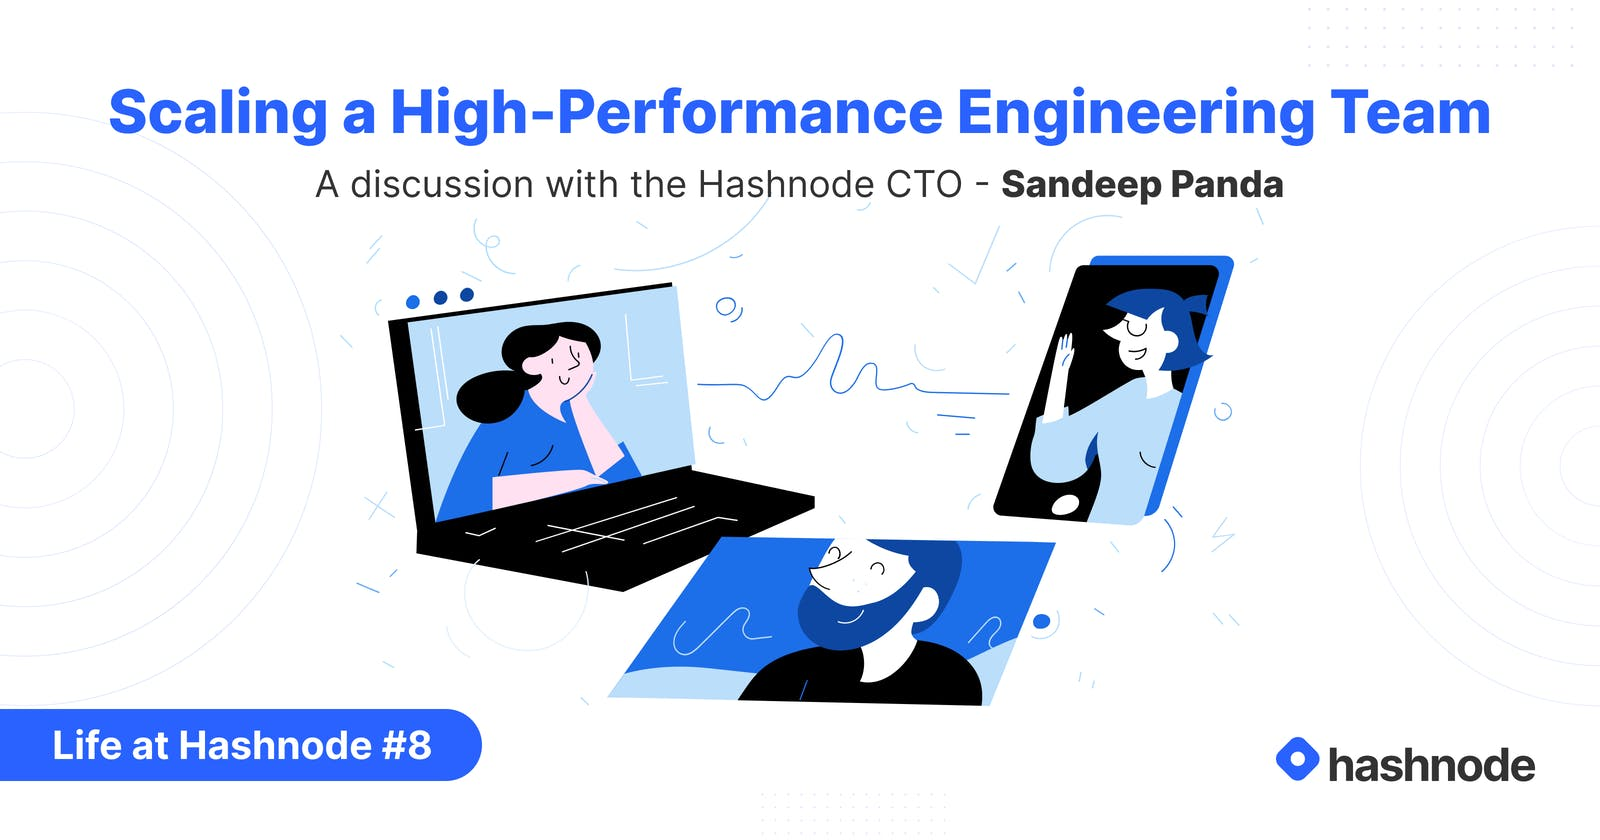 Life at Hashnode #8: How We're Scaling Up Our Engineering Team